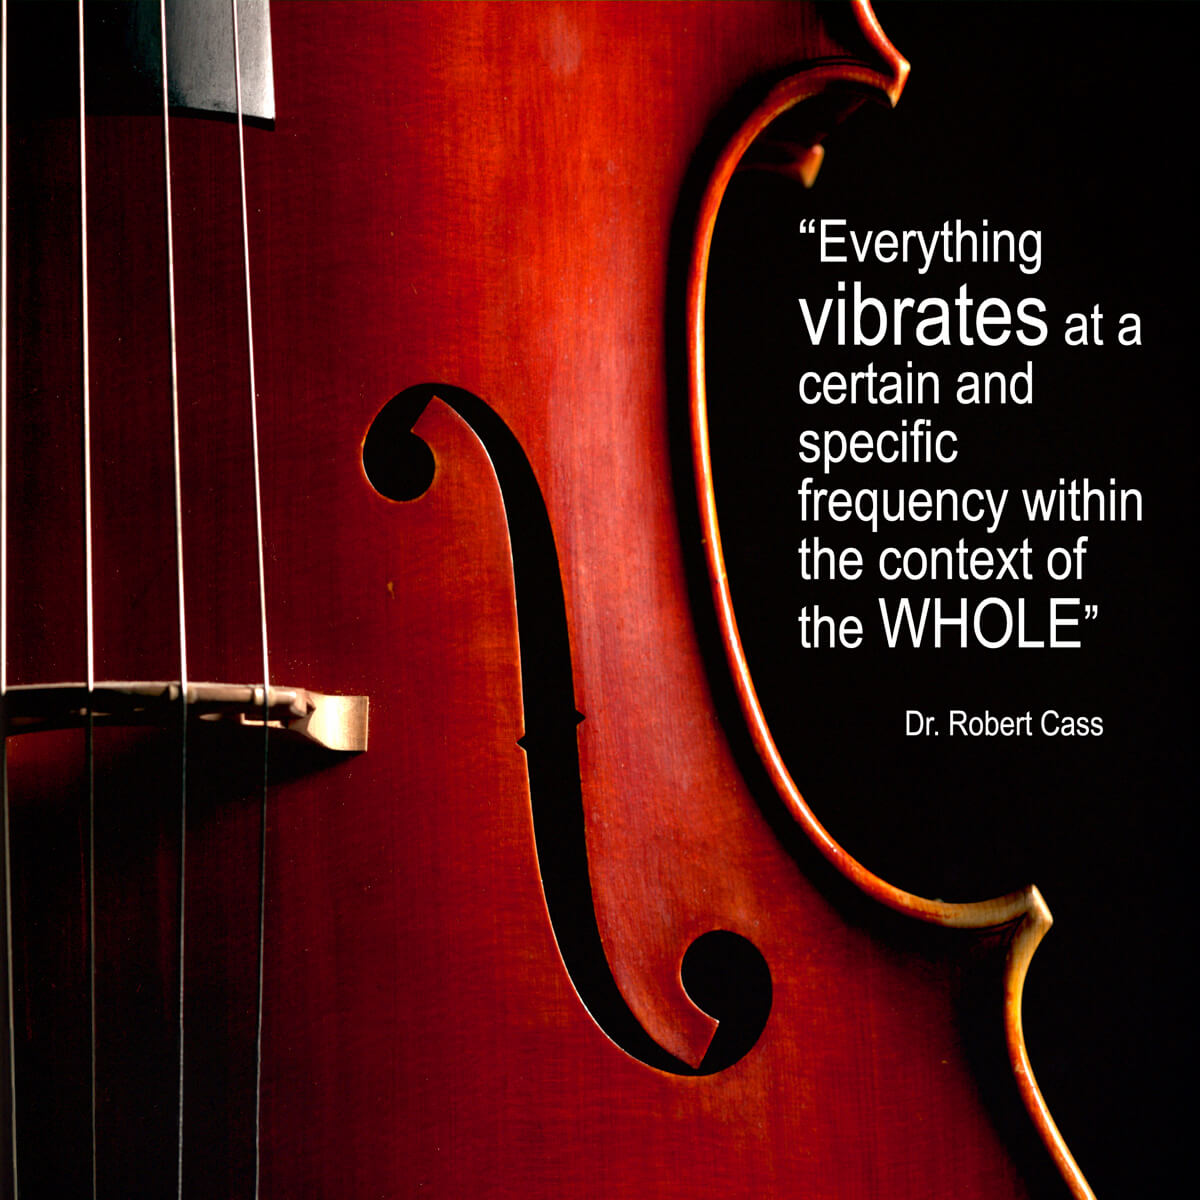 cello-wording-added-for-plaque.jpg